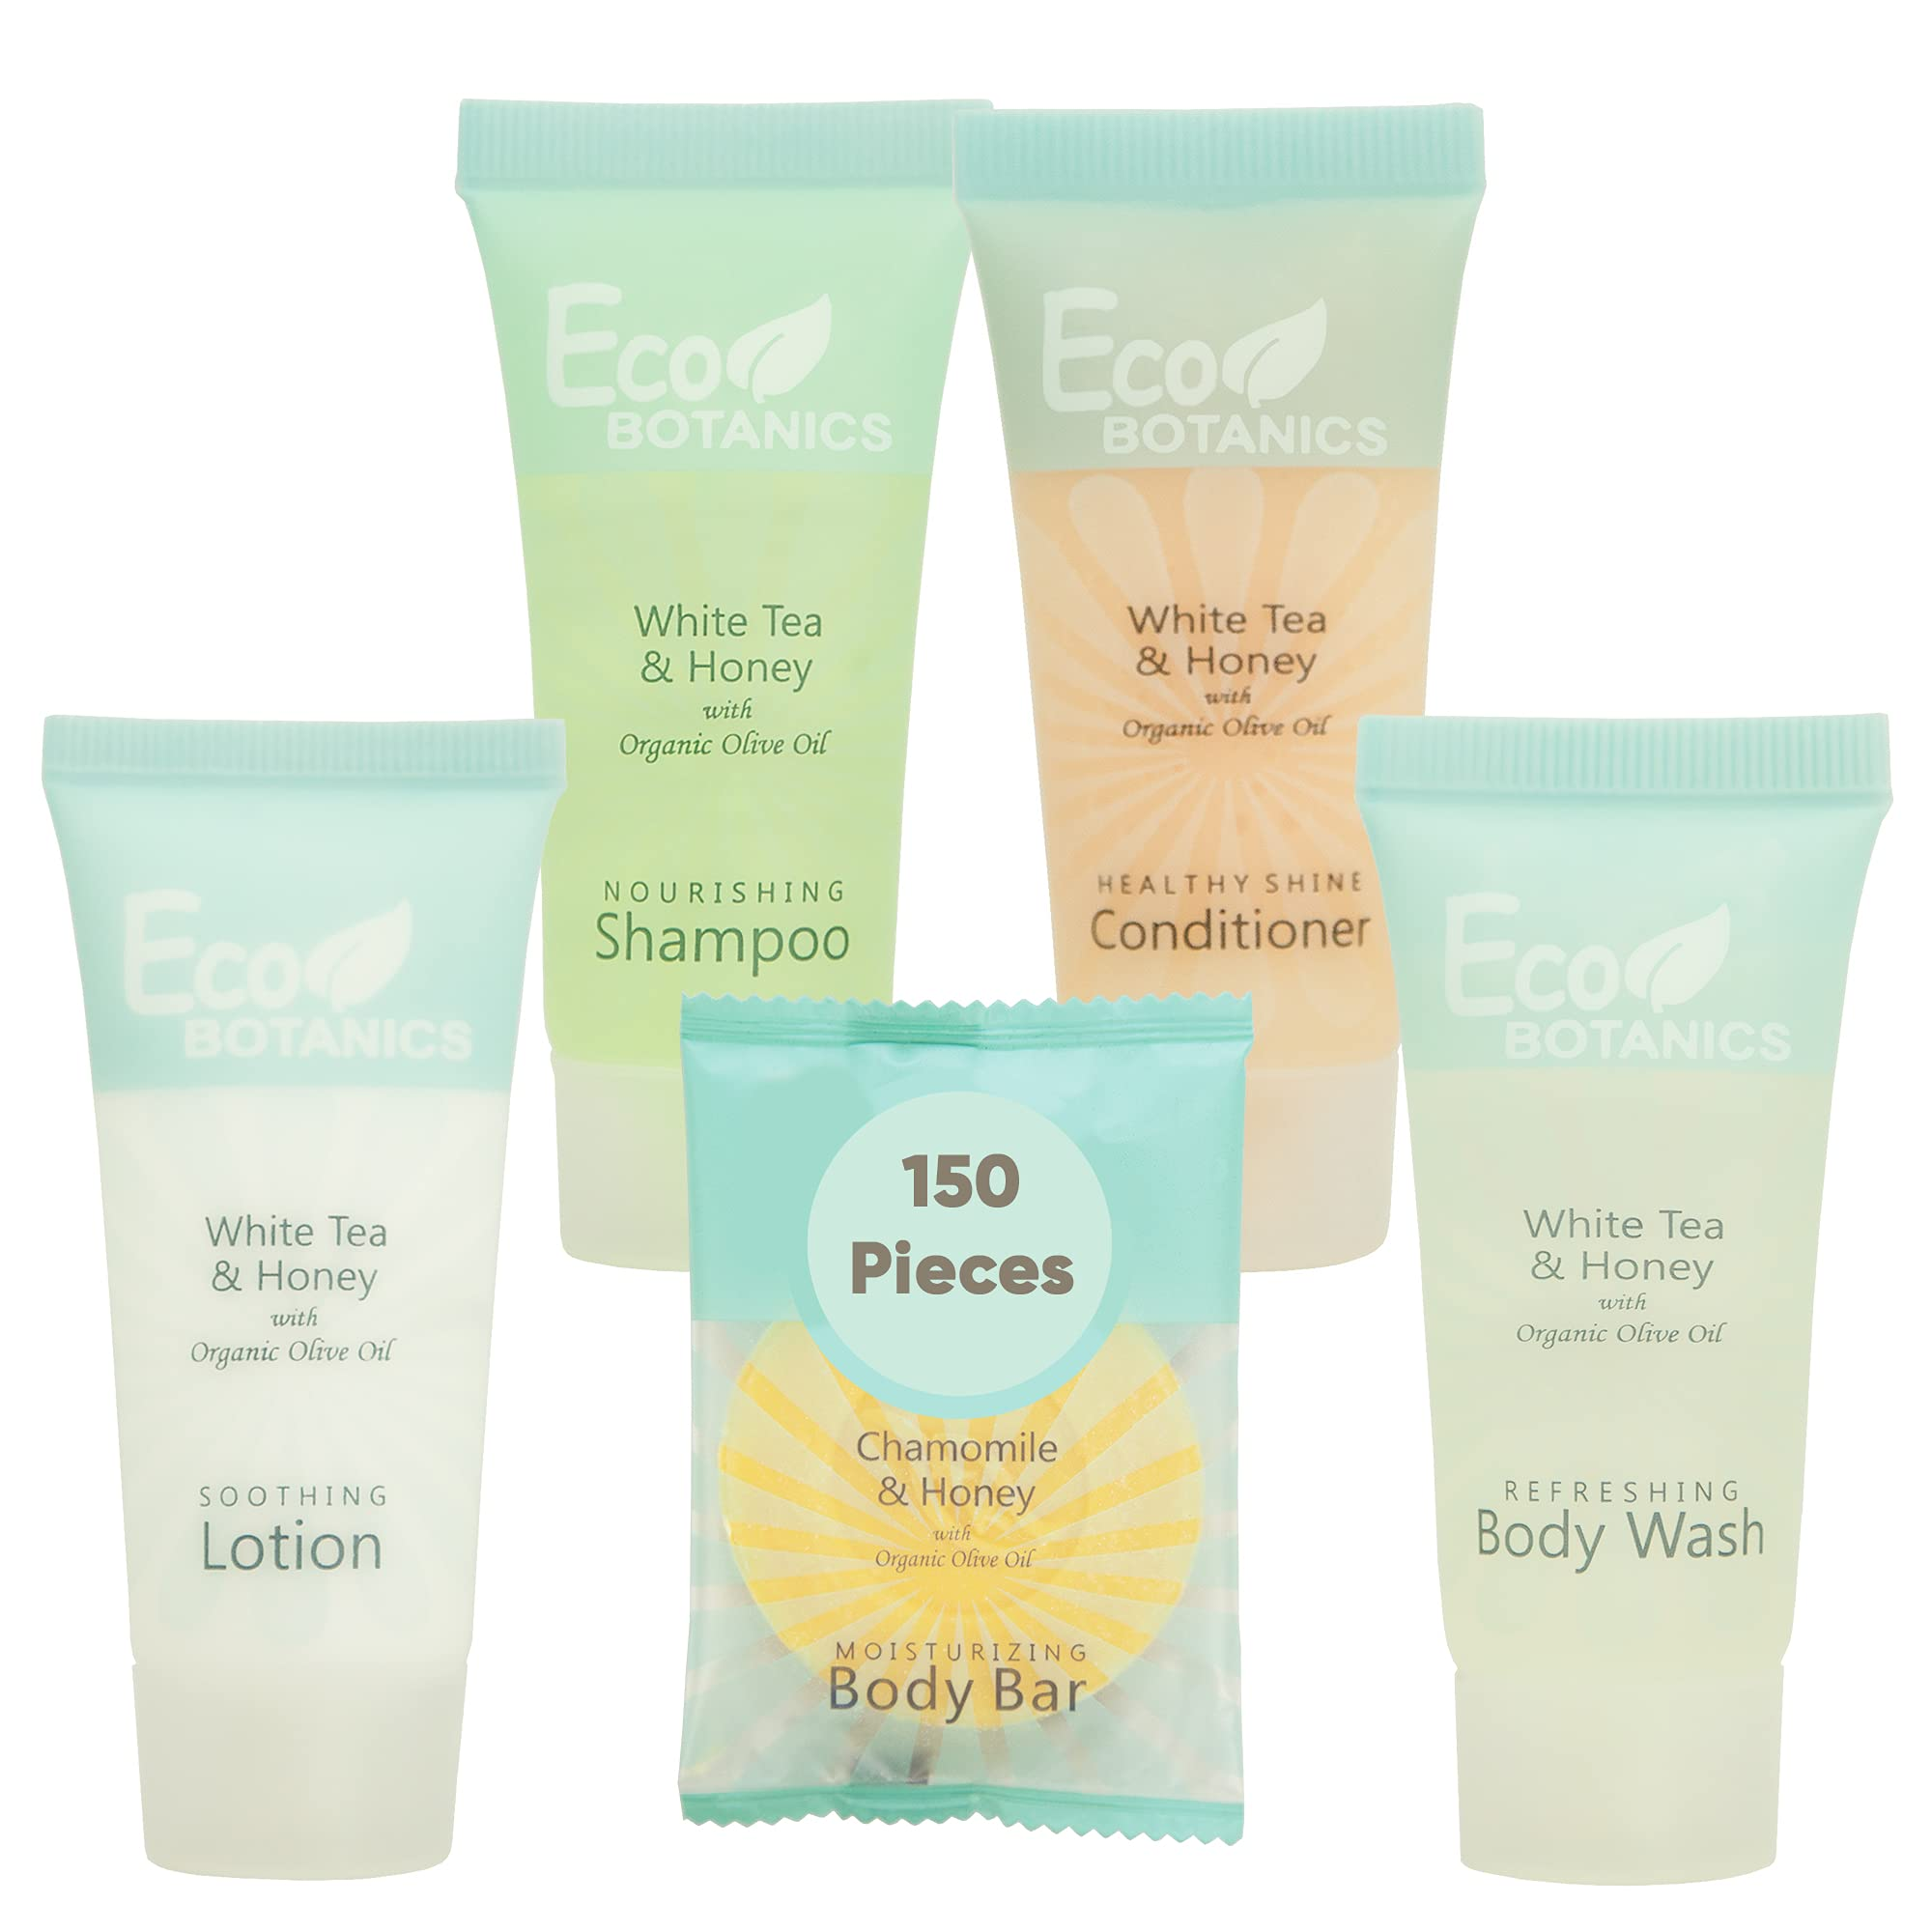 Eco Botanics Hotel Soaps and Toiletries Bulk Set | 1-Shoppe All-In-Kit Amenities for Hotels | 0.85oz Hotel Shampoo & Conditioner, Body Wash, Body Lotion & 0.89oz Bar Soap Travel Size | 150 Pieces